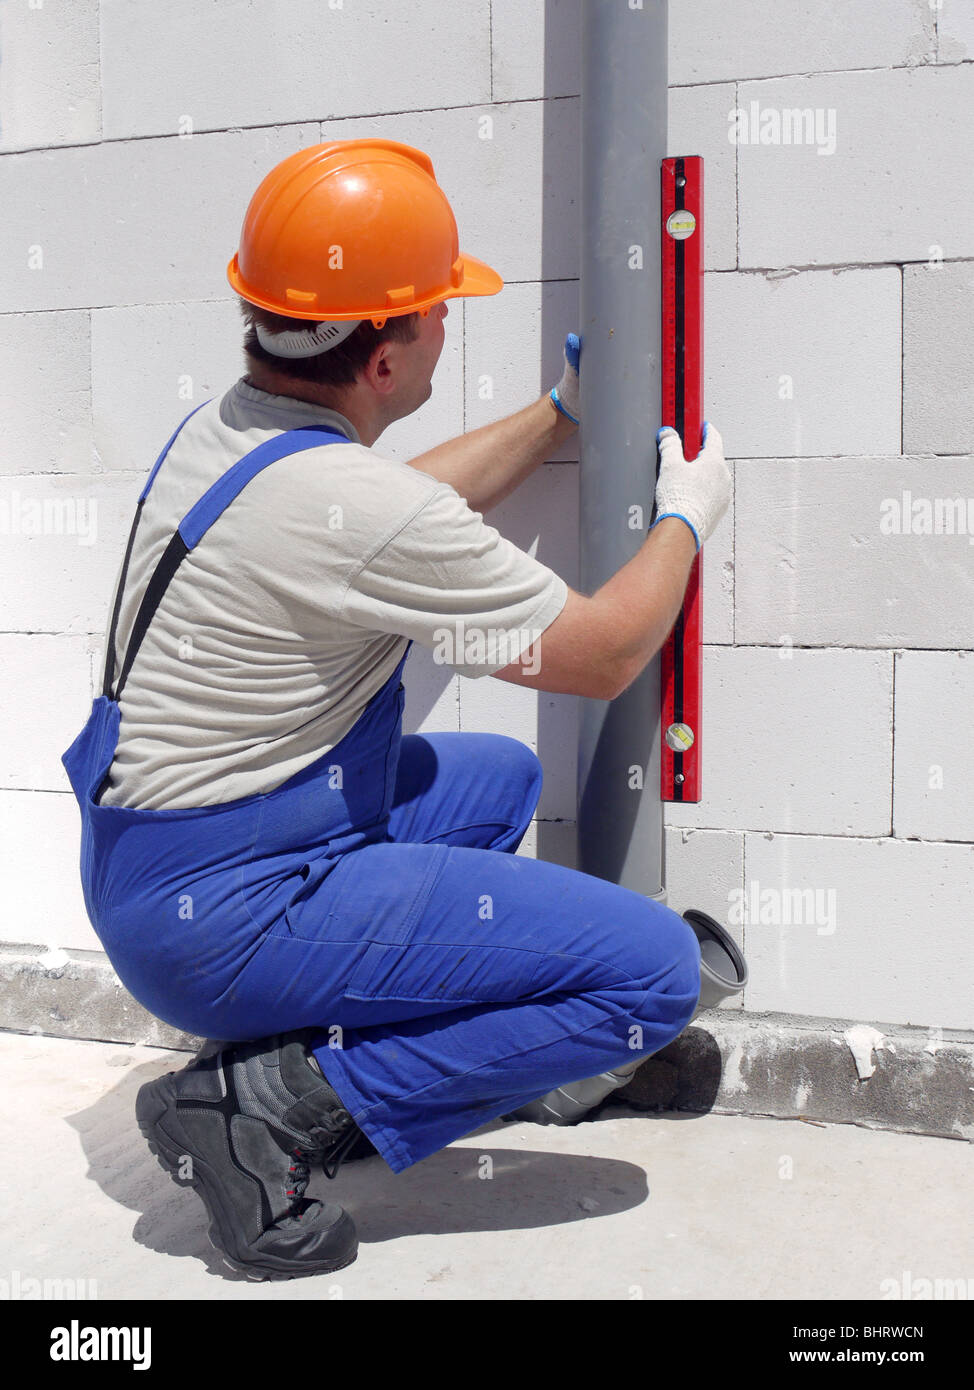 Plumber using level for checking plumb line of assembled pvc sewage pipes inside unfinished house - Stock Image